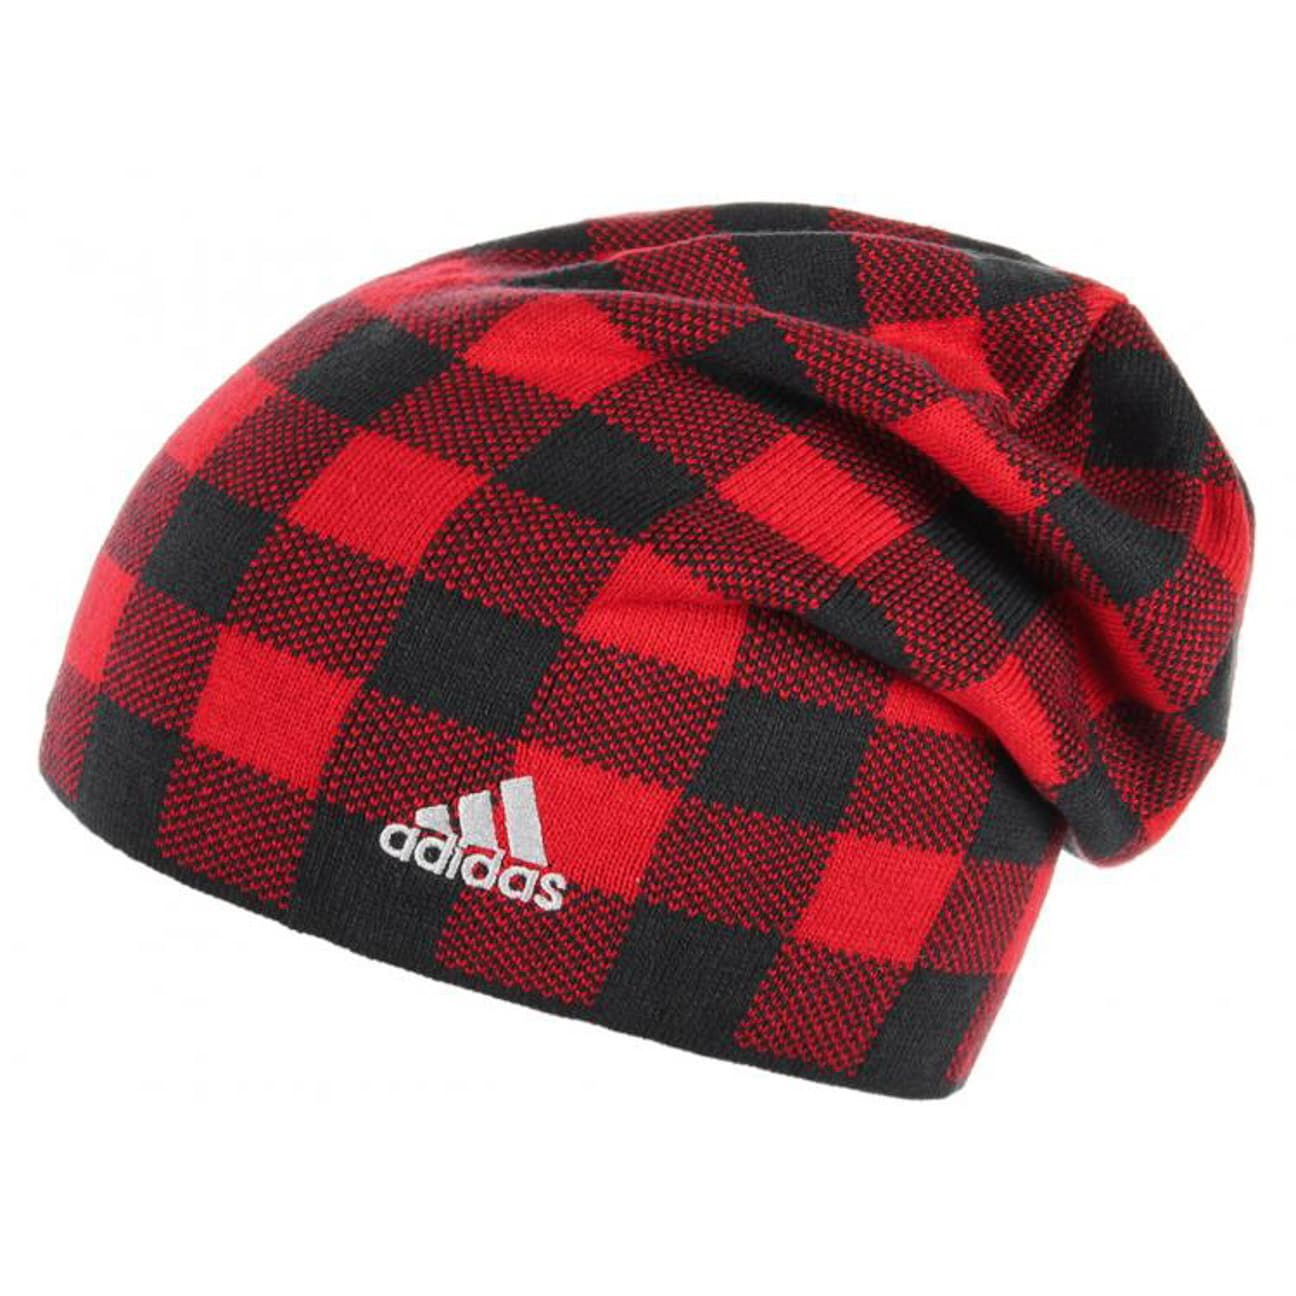 ... Graphic Beanie by adidas - red 1 52e8523163a